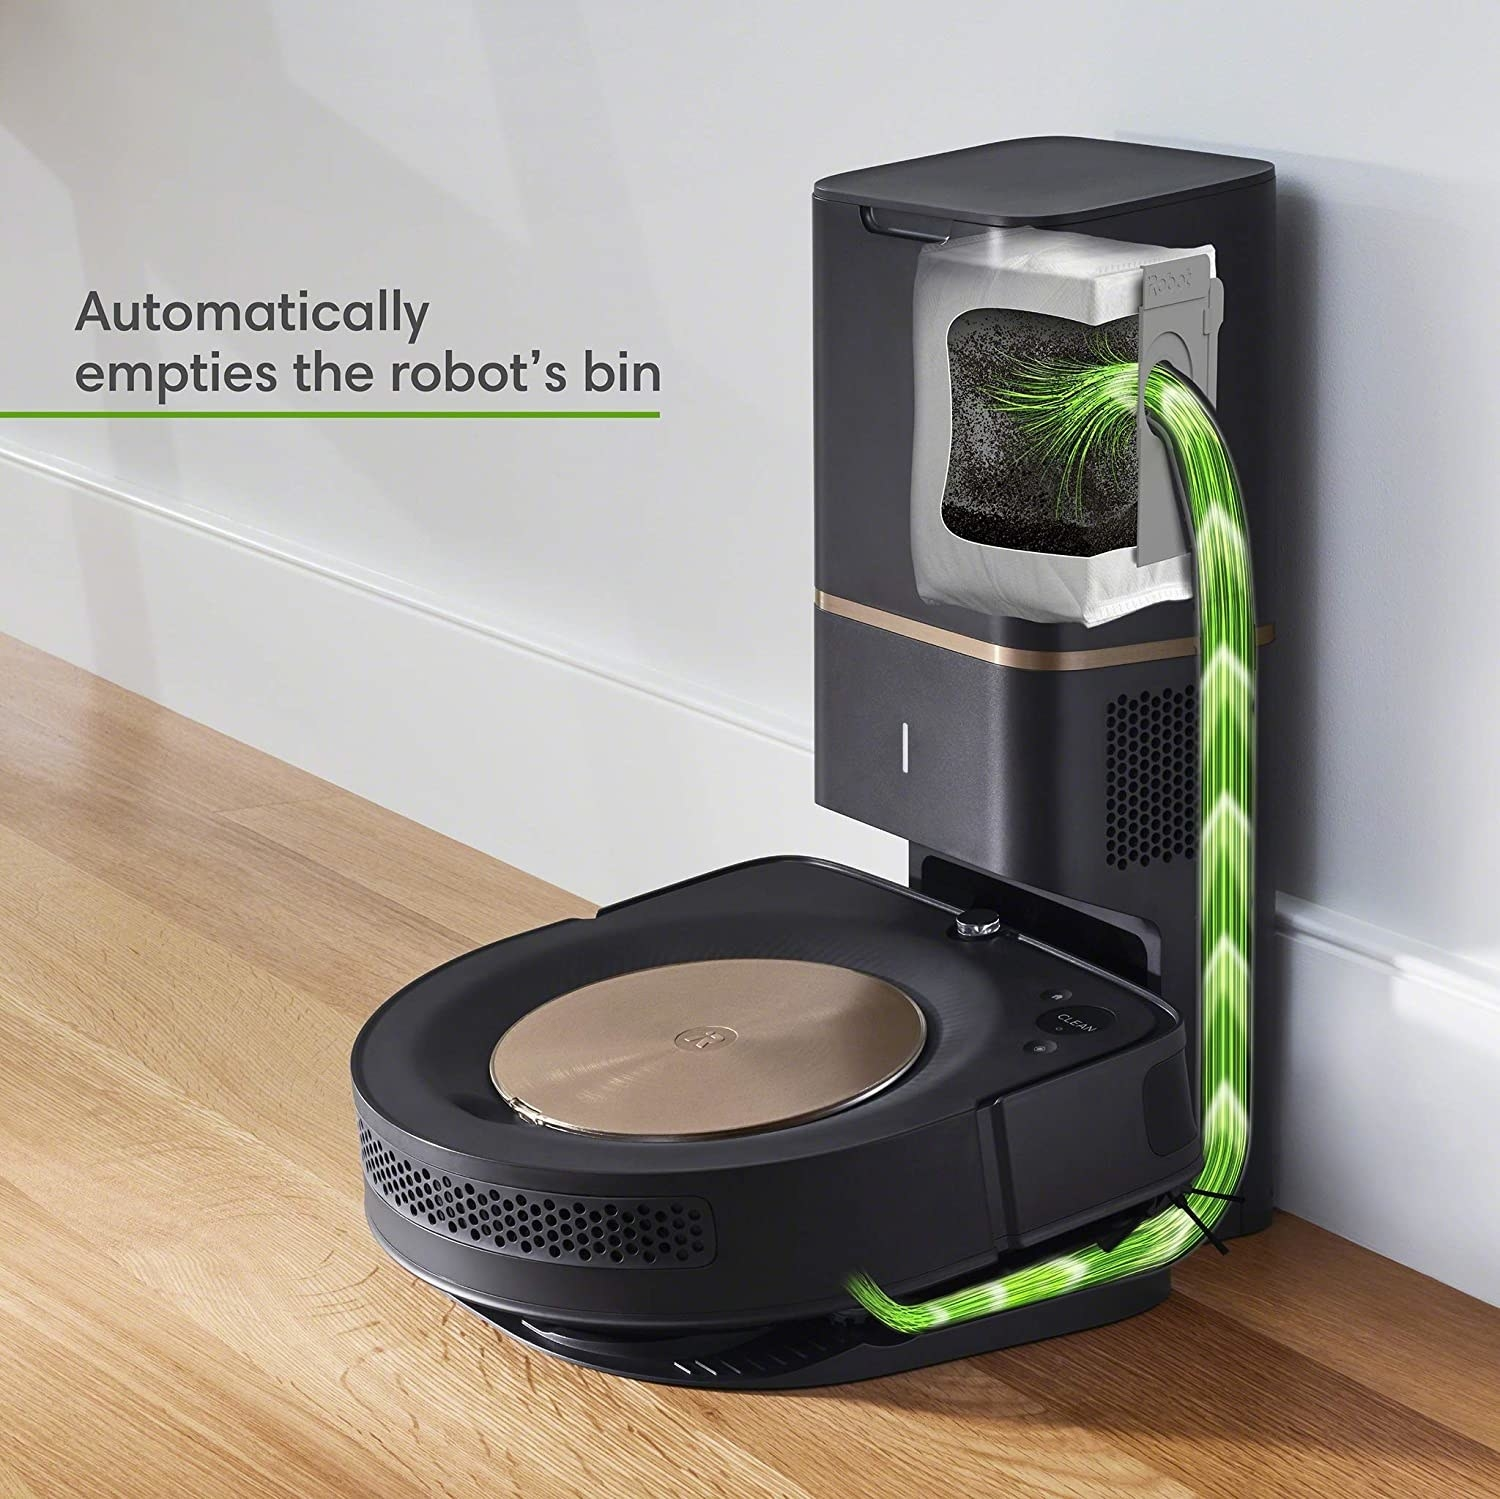 The Roomba sitting in its charging portal